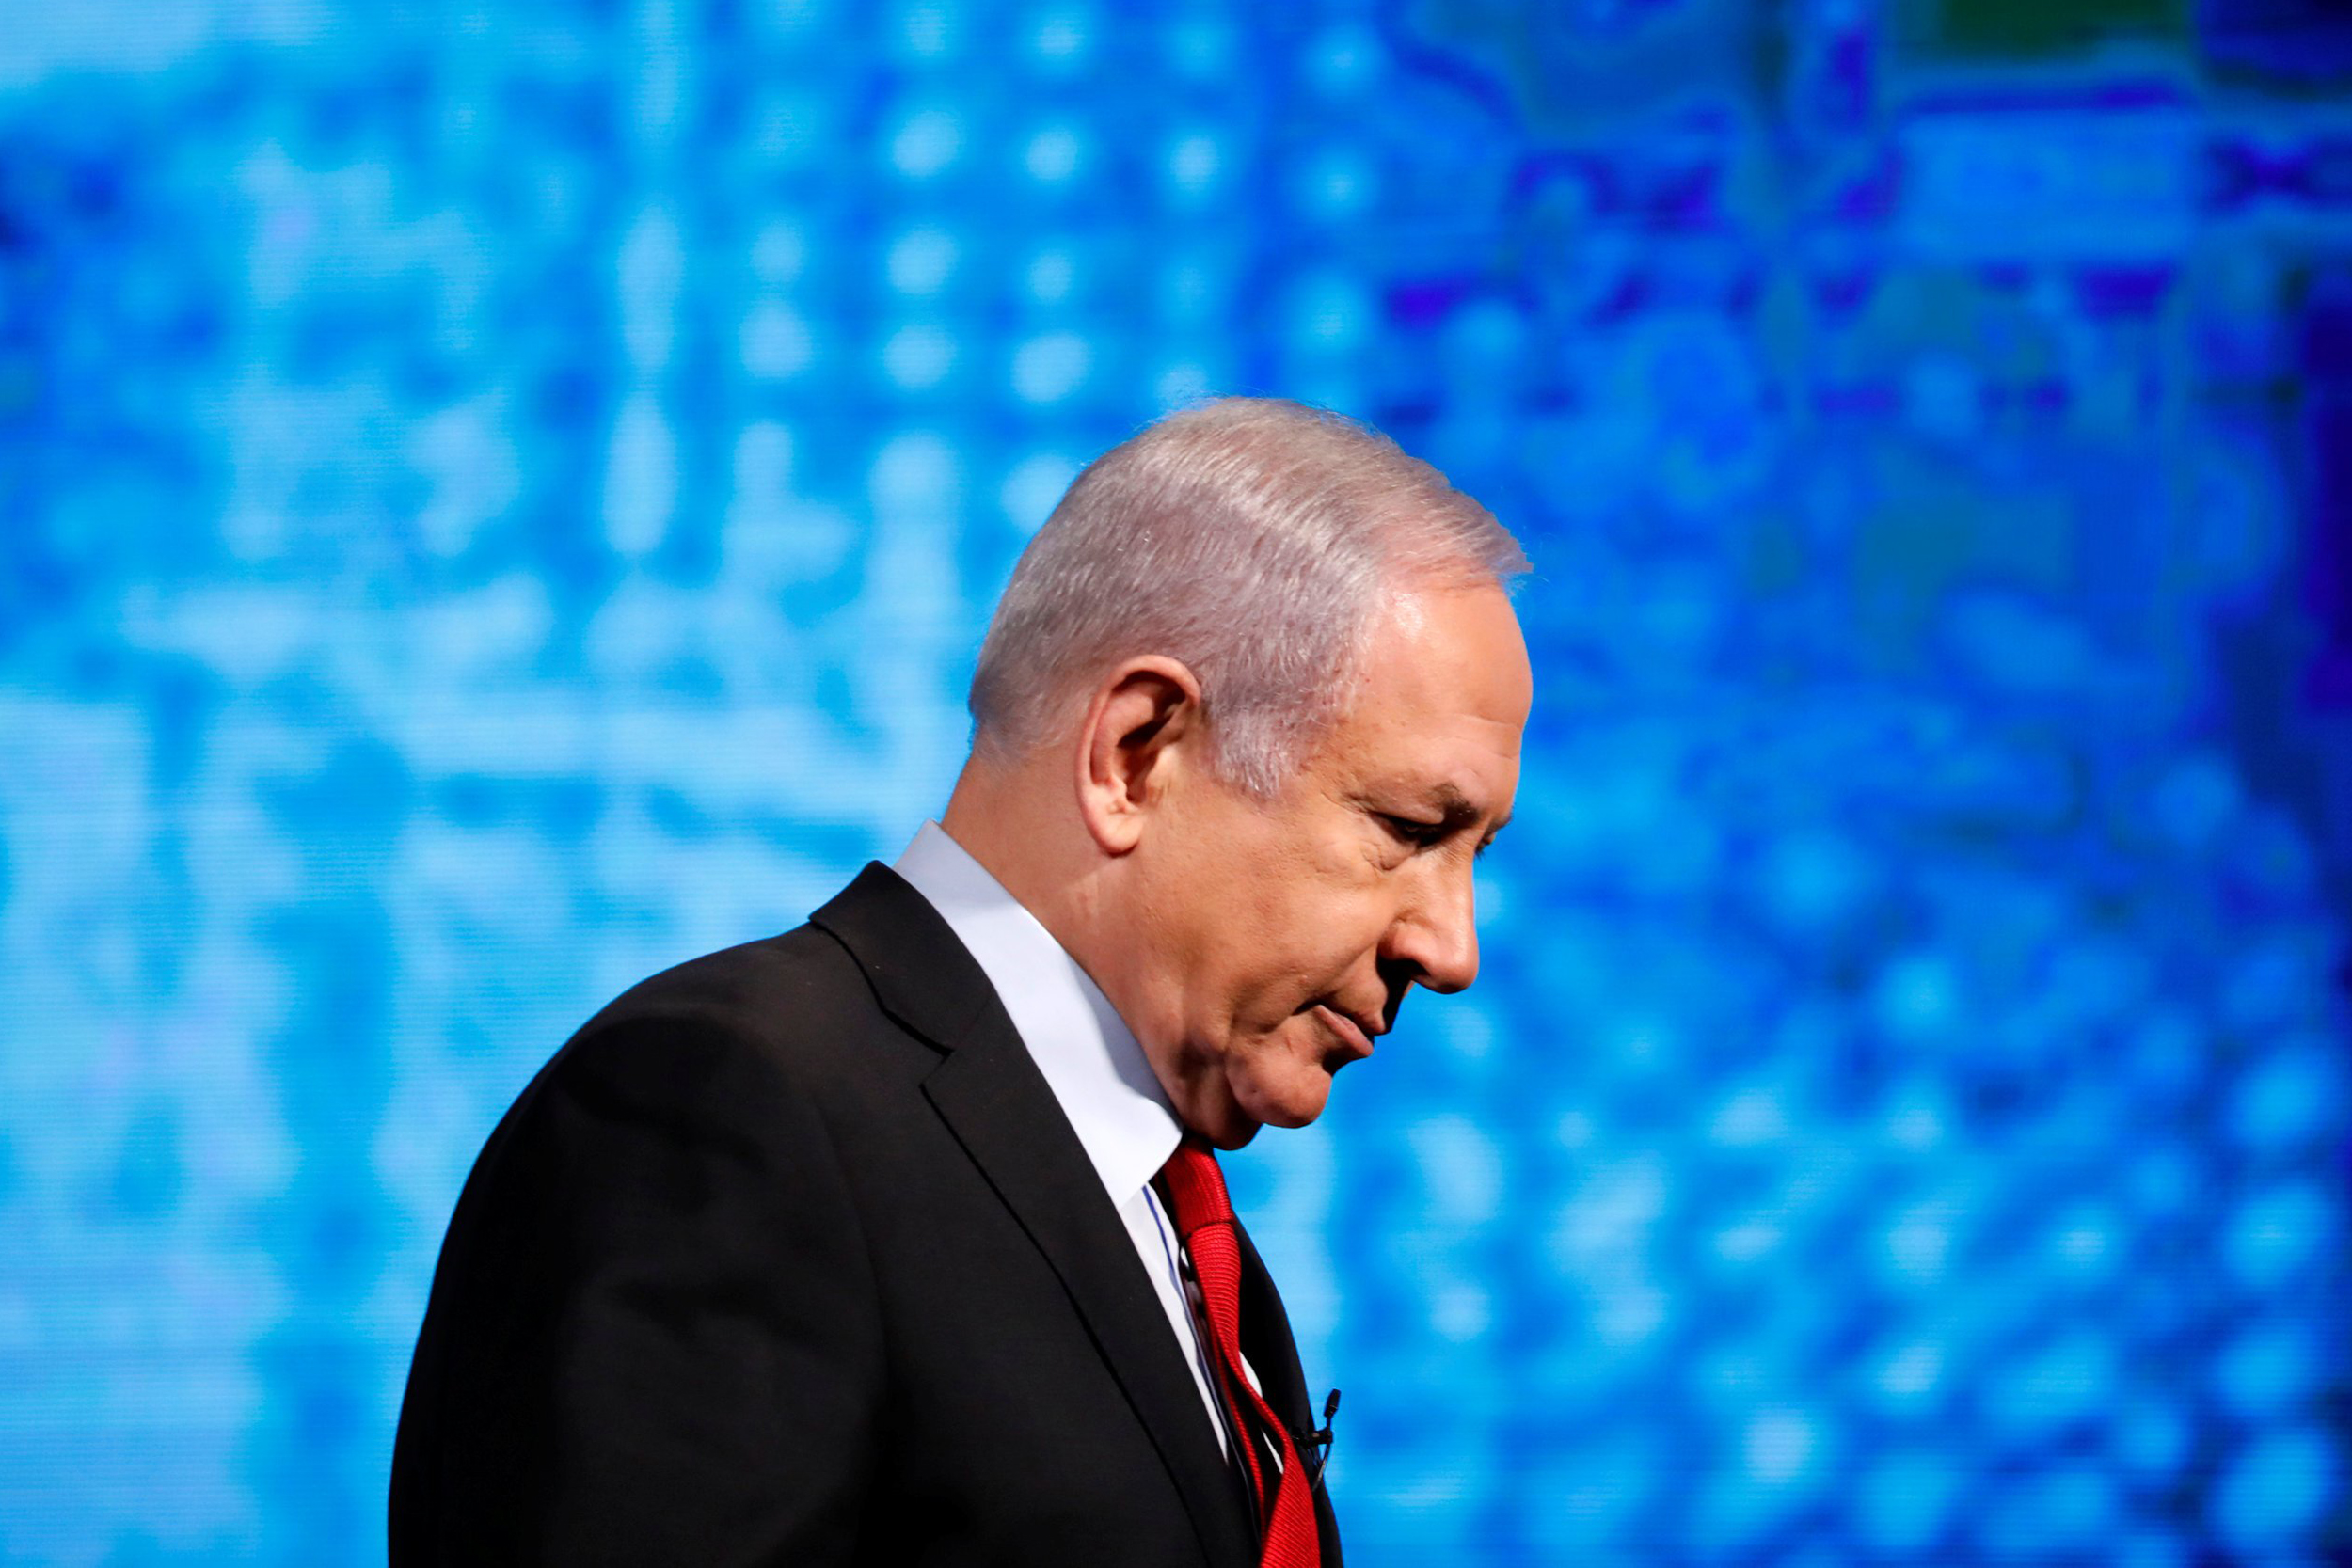 Netanyahu-appears-to-say-war-with-Iran-is-common-goal